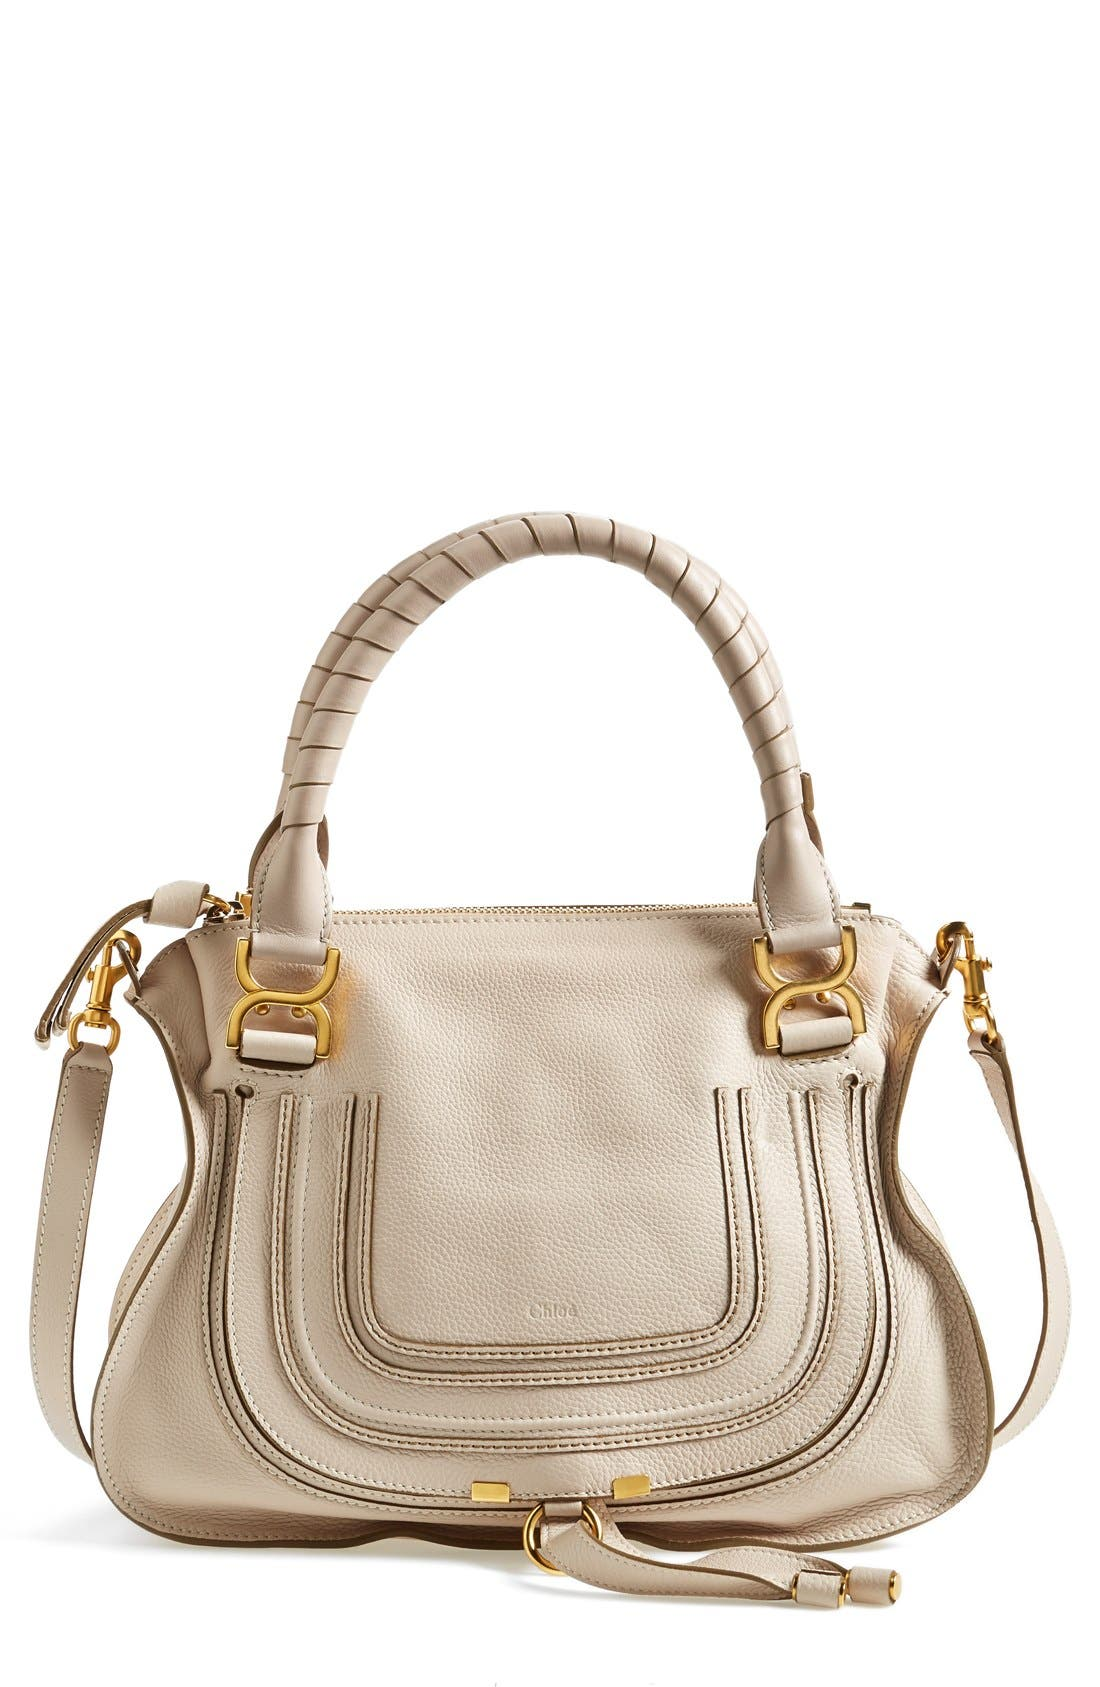 Alternate Image 1 Selected - Chloé 'Medium Marcie' Leather Satchel